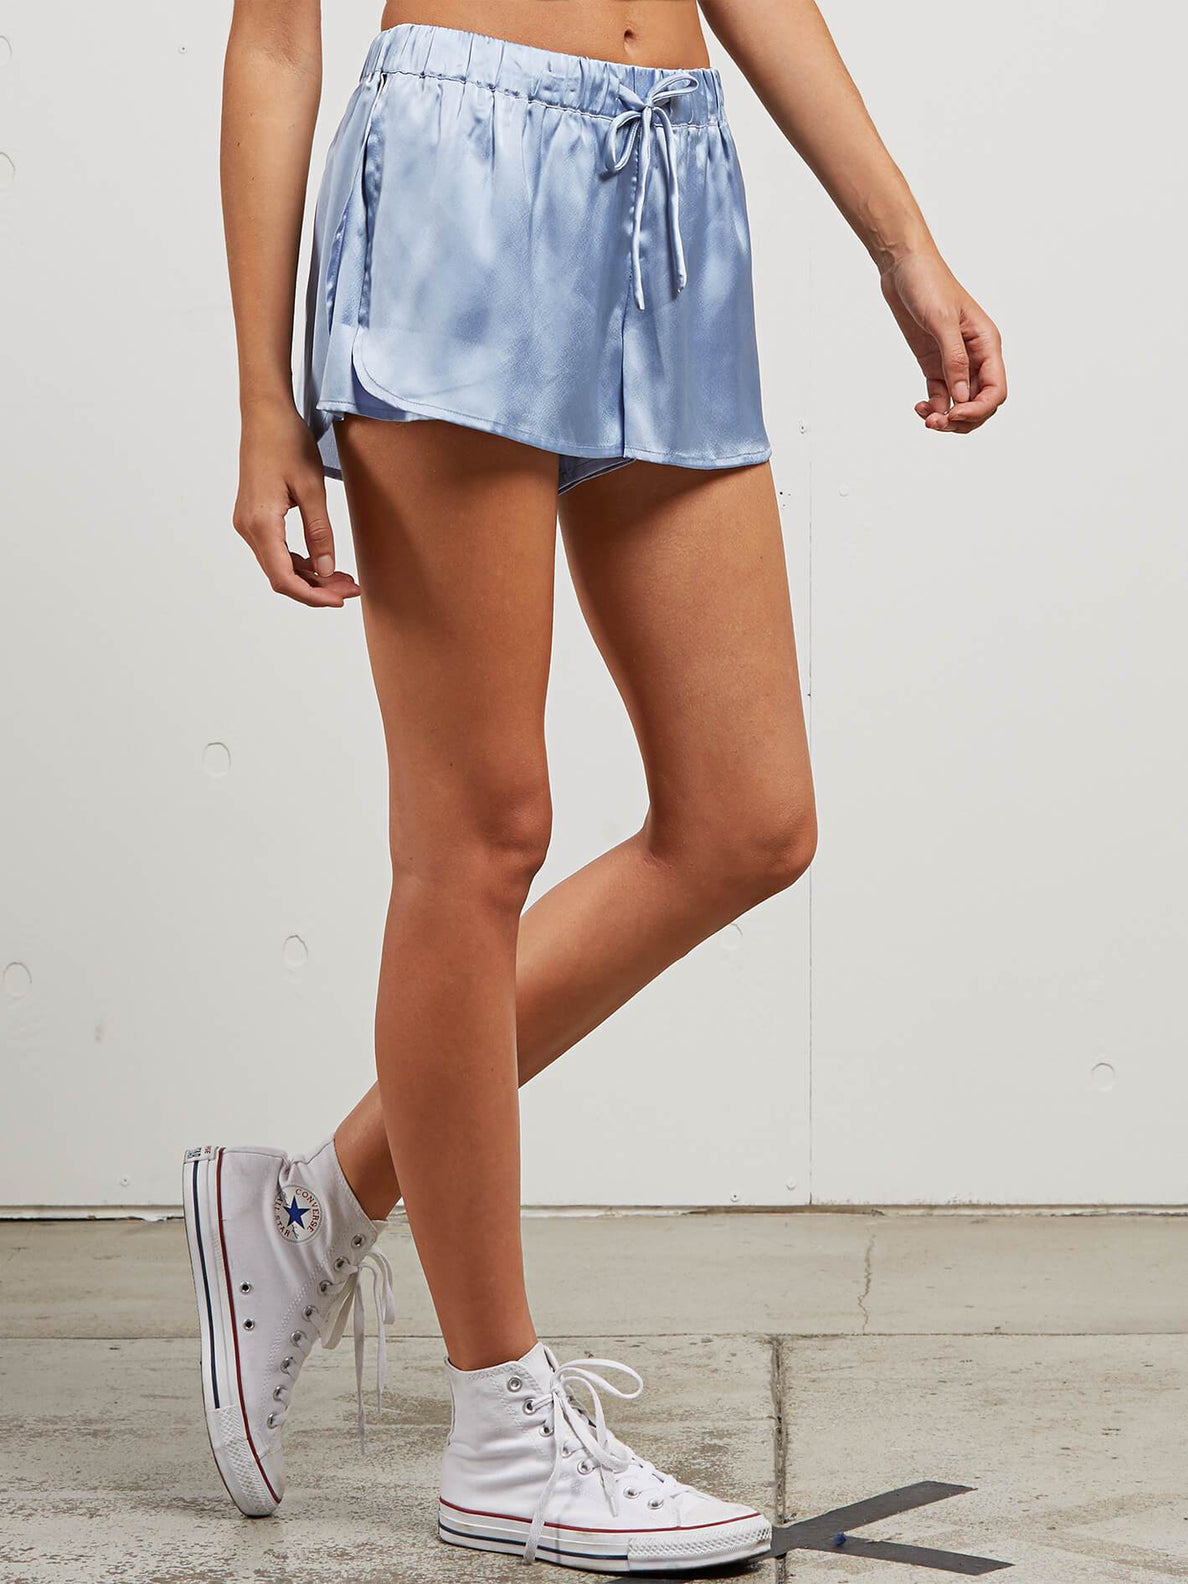 You Want This Shorts In Misty Blue, Alternate View